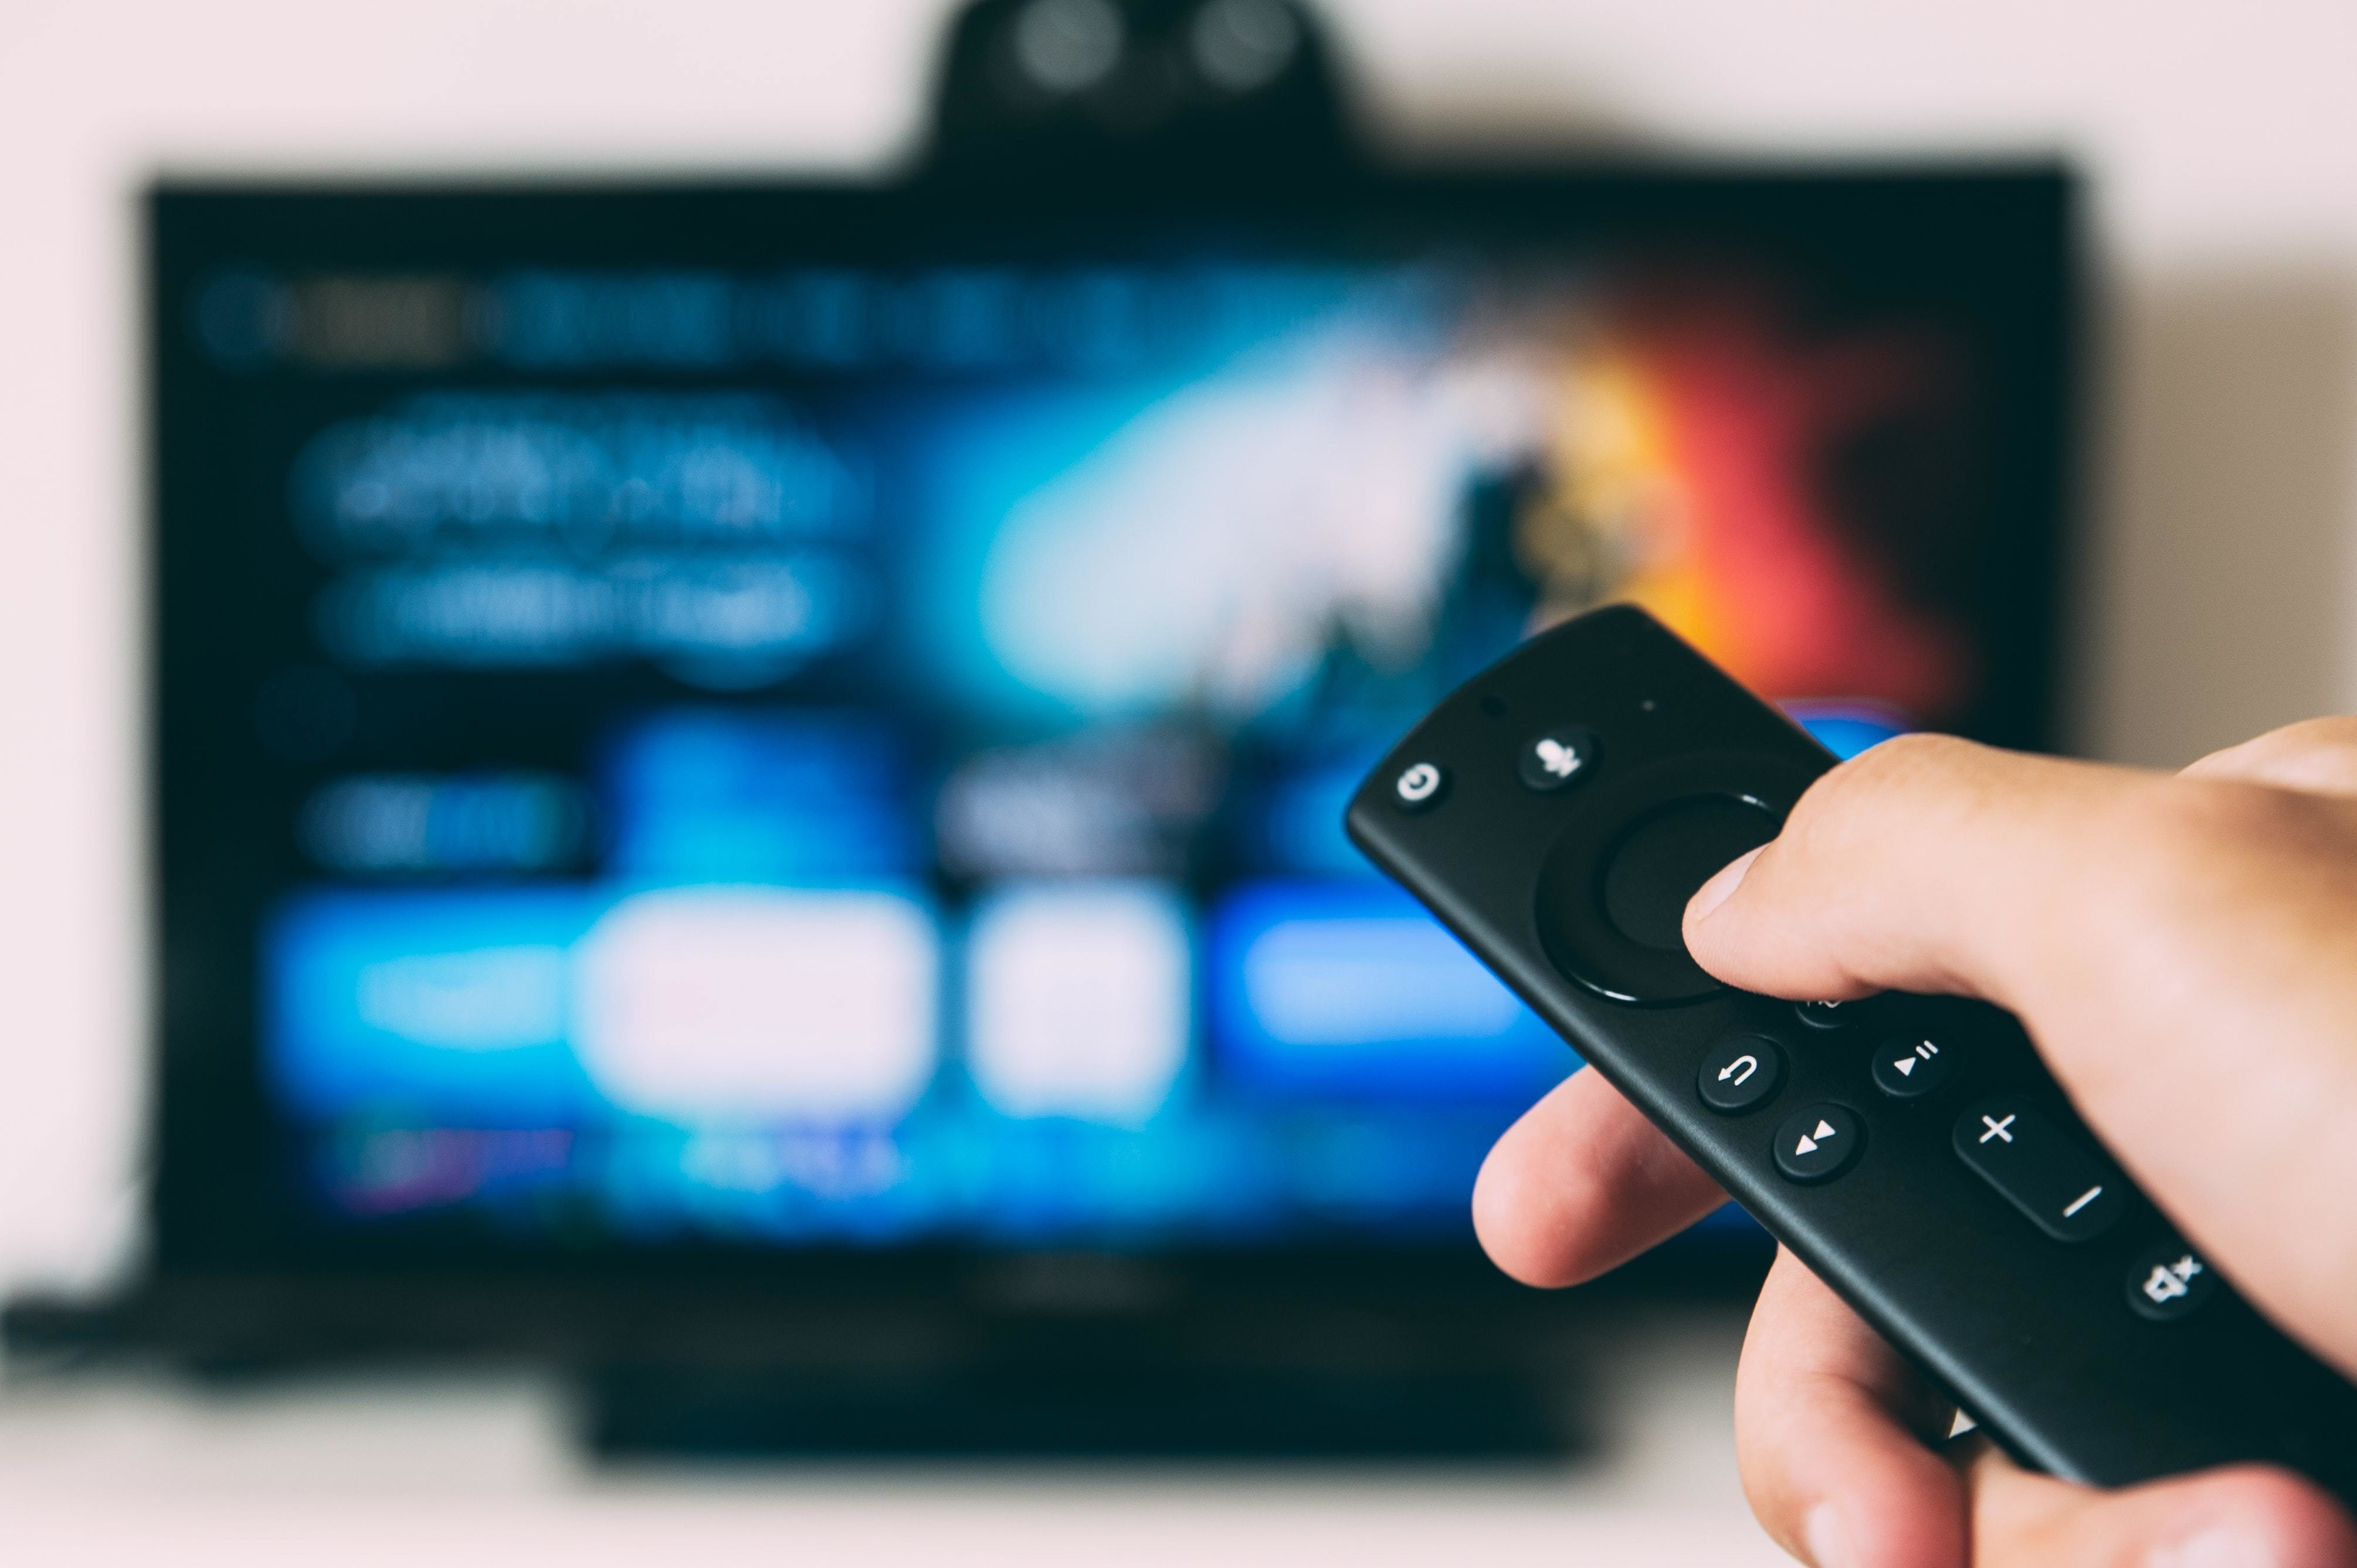 a picture of a hand controlling a remote control pointed at a television